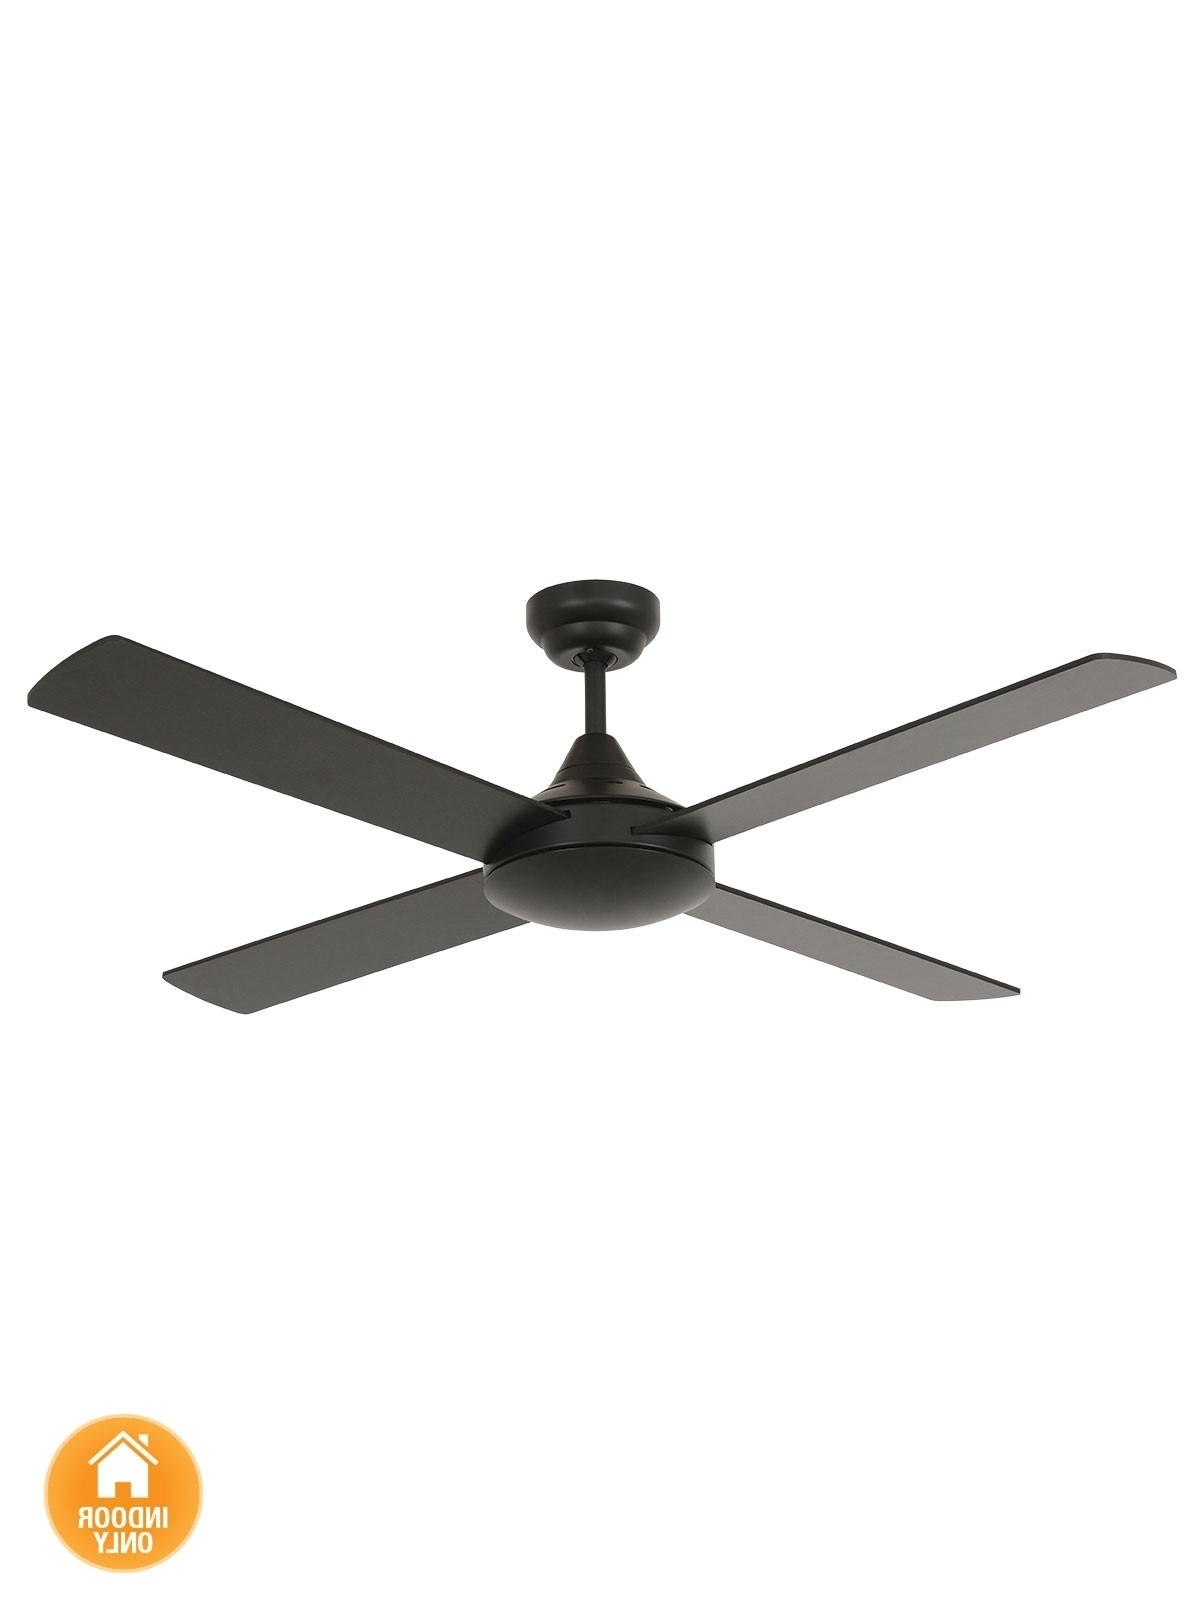 Beacon Lighting Throughout Well Known Sunshine Coast Outdoor Ceiling Fans (View 5 of 20)